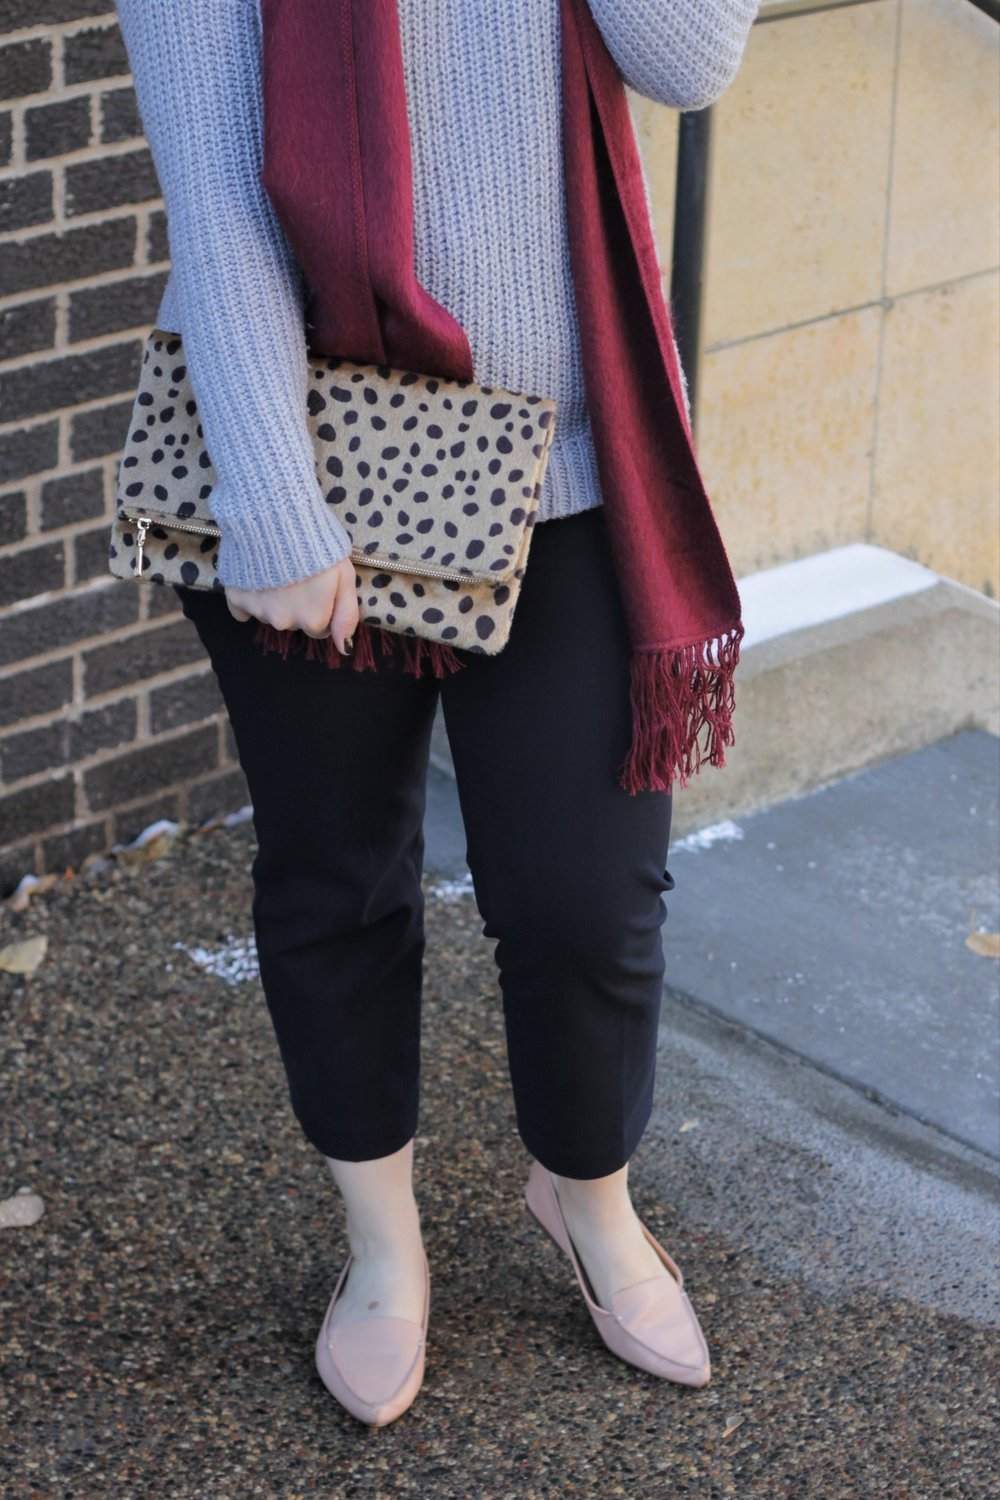 Layers, Layers, Layers! Cozy Business Casual | Work & What She Wore